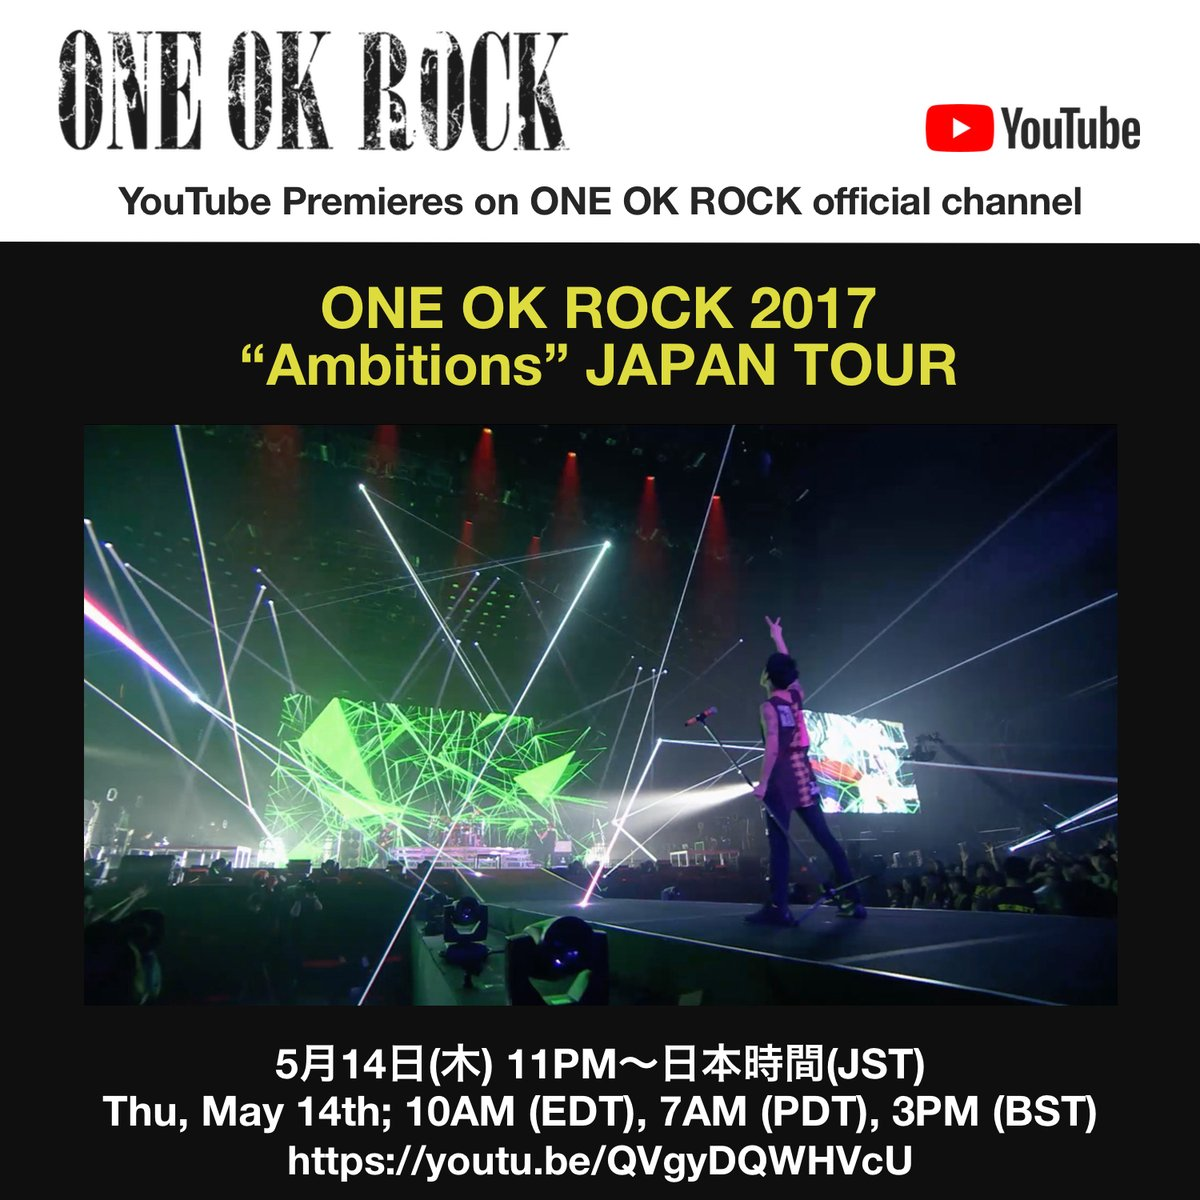 Ambitions!! Who is up for this? We are almost there guys, remember #dontstopthemusic and #stayhome #ONEOKROCK Thursday, May 14th 11:00PM (JST) 10:00 AM (EDT), 7:00 AM (PDT), 3:00 PM (BST) URL:youtu.be/QVgyDQWHVcU